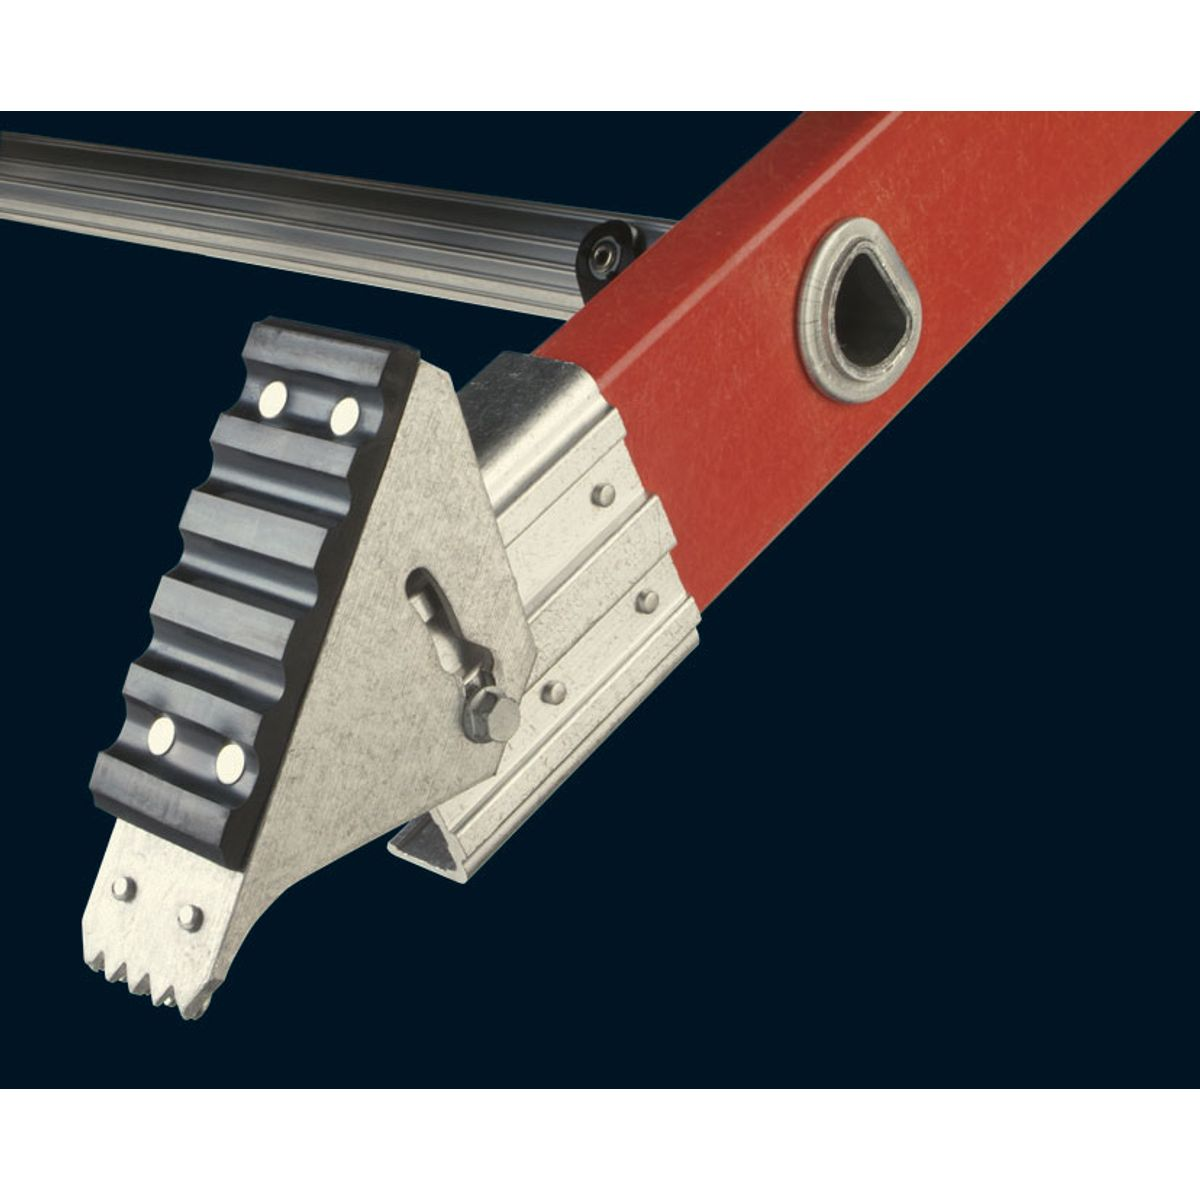 D6224 2 Extension Ladders Werner Asia